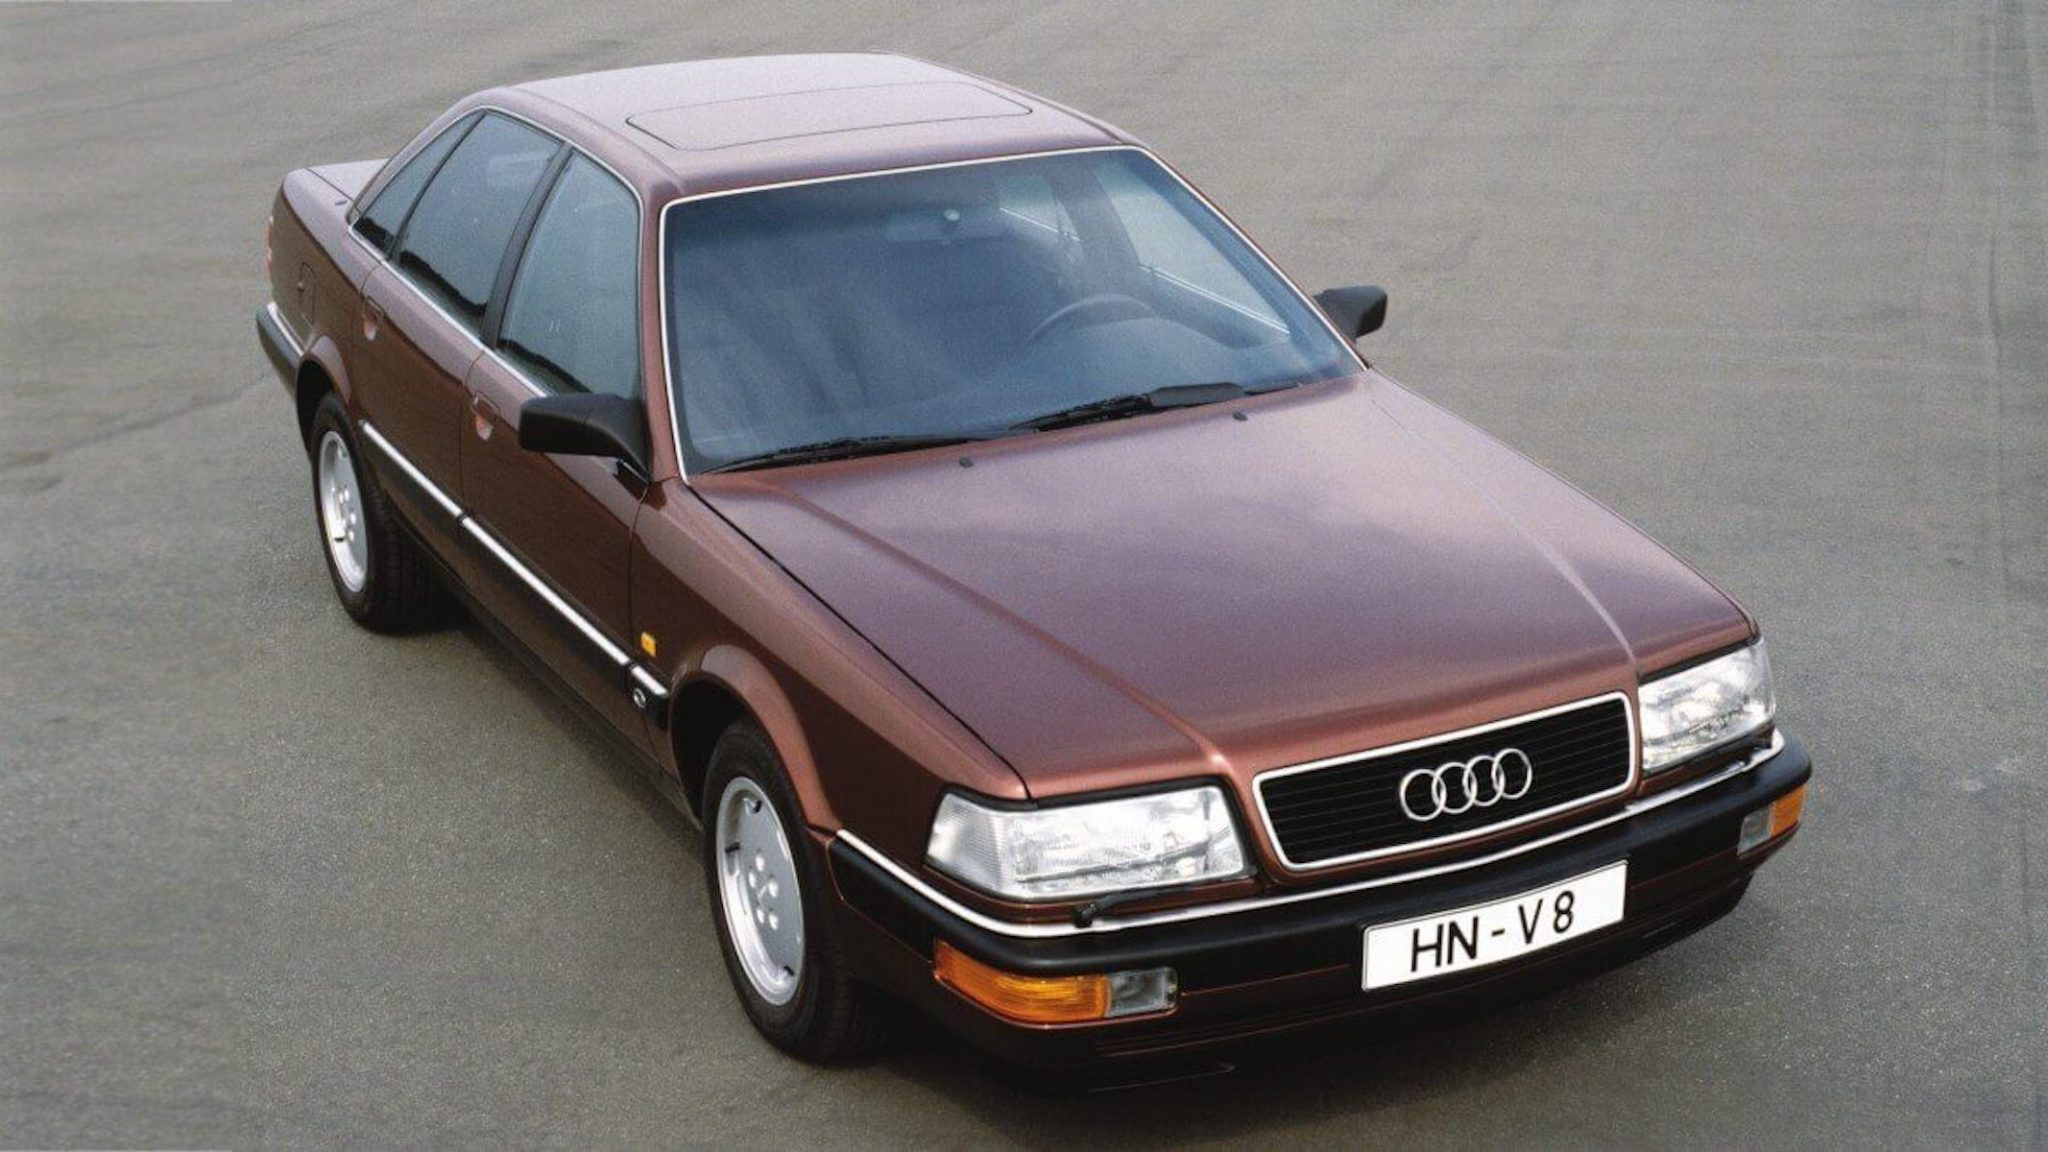 A side view of a brown 1988 Audi V8 Sedan in a parking lot